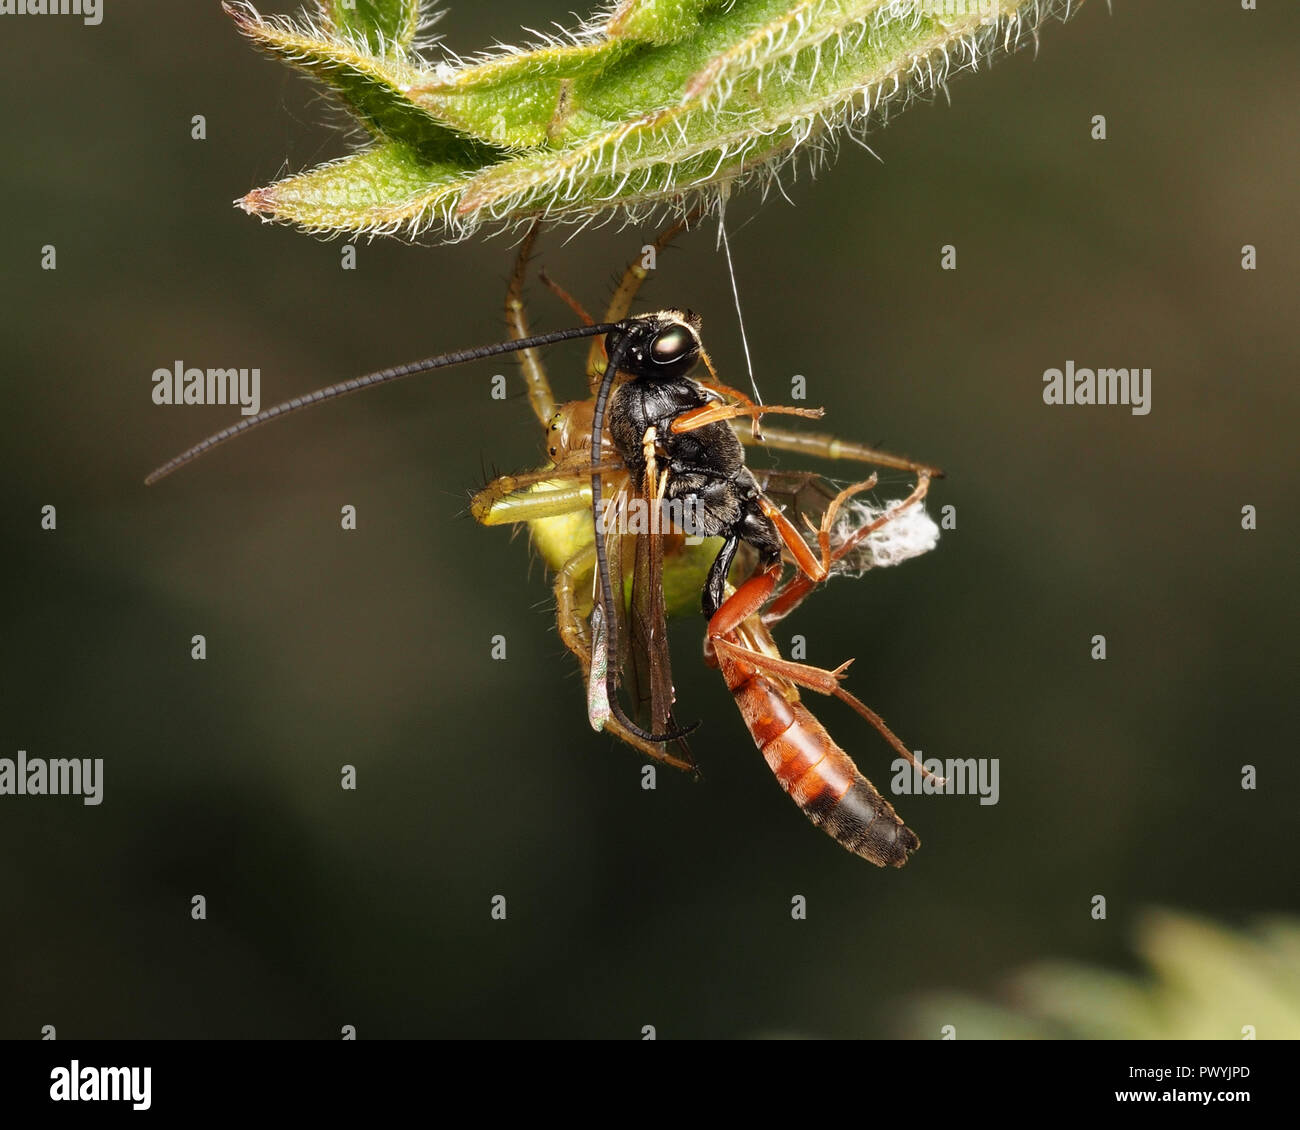 Parasitoid wasp caught by Araniella sp spider. Tipperary, Ireland - Stock Image